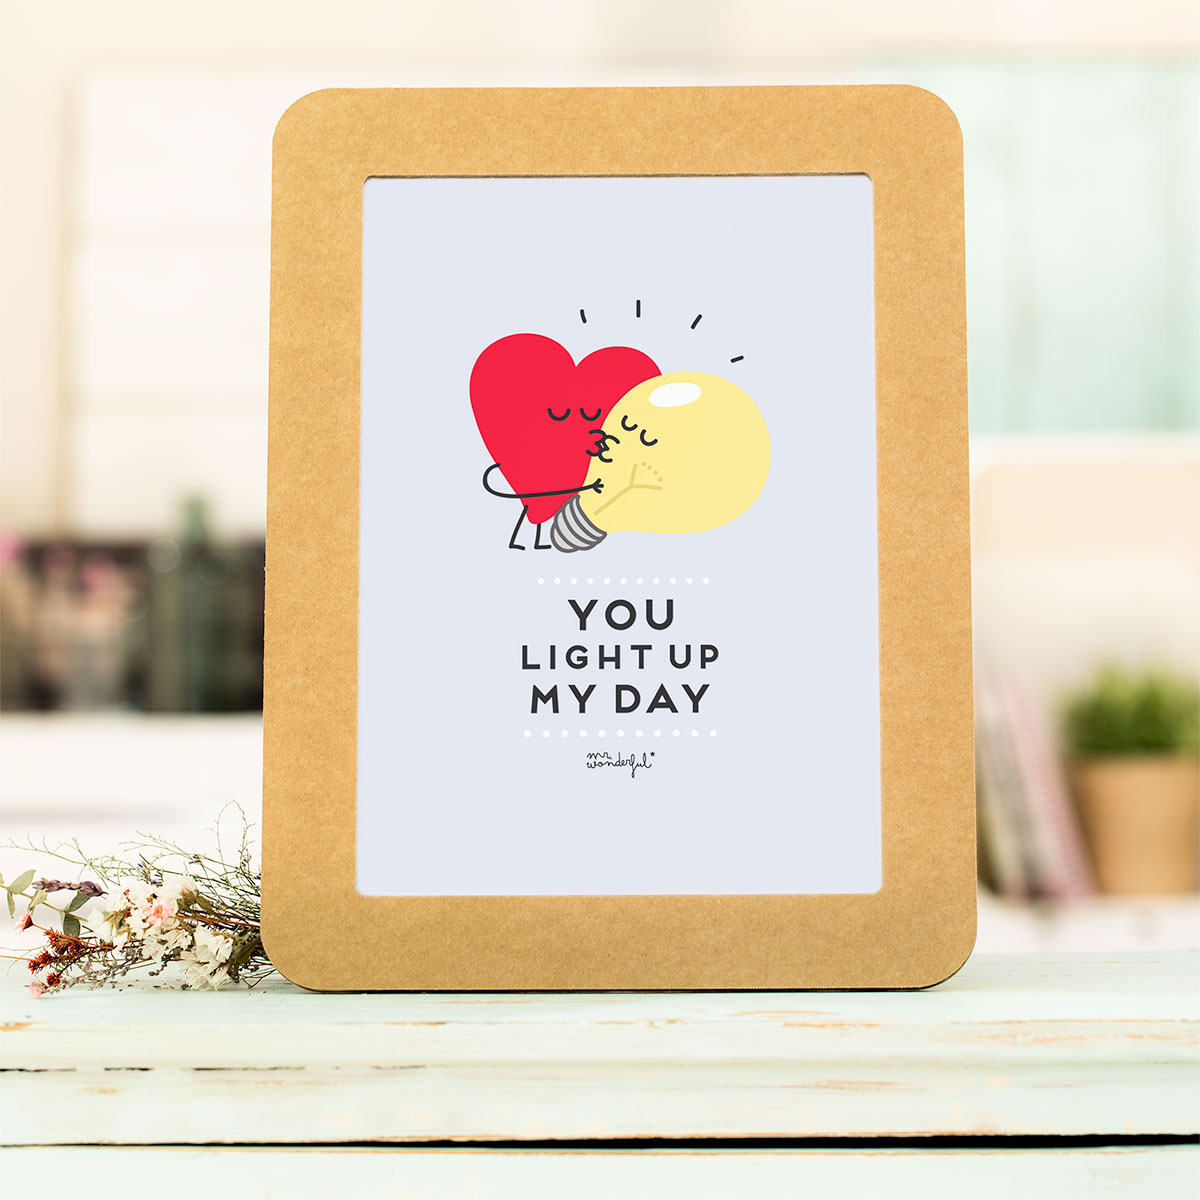 mrwonderful_LAM-RELIEVE-18-MARCO_light-my-day